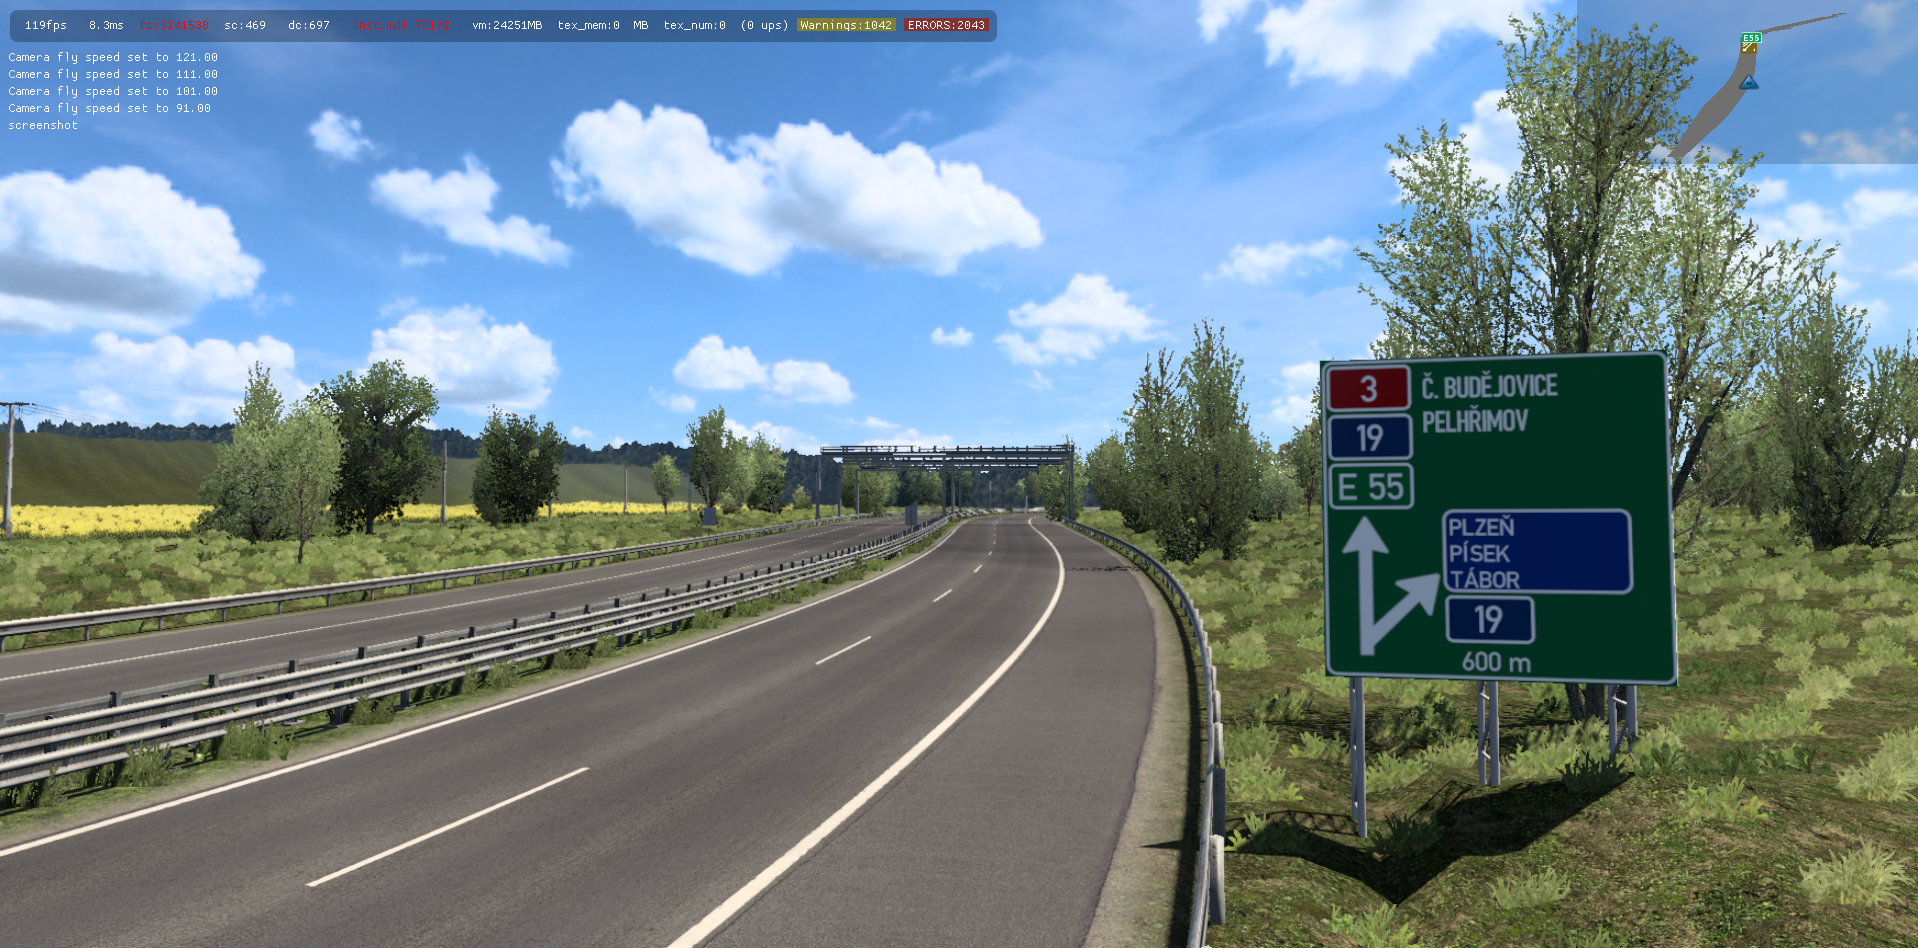 ets2_20210810_220021_00.png